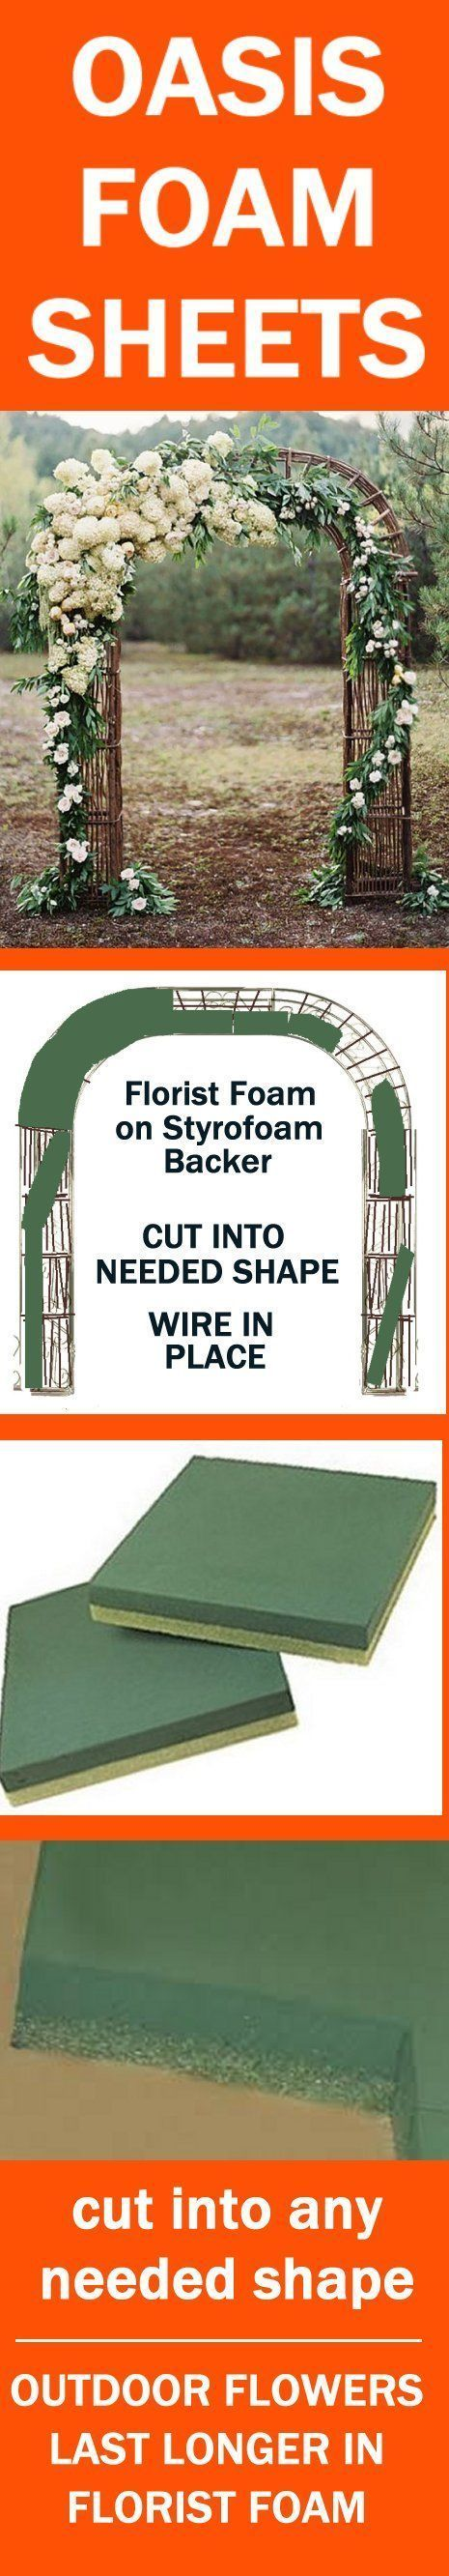 Wedding Arch Flowers - Foam Cages for Arch Flowers Learn how to make bridal bouquets, wedding corsages, boutonnieres, centerpieces, church and outdoor wedding decorations. Buy discount fresh flowers and florist supplies.